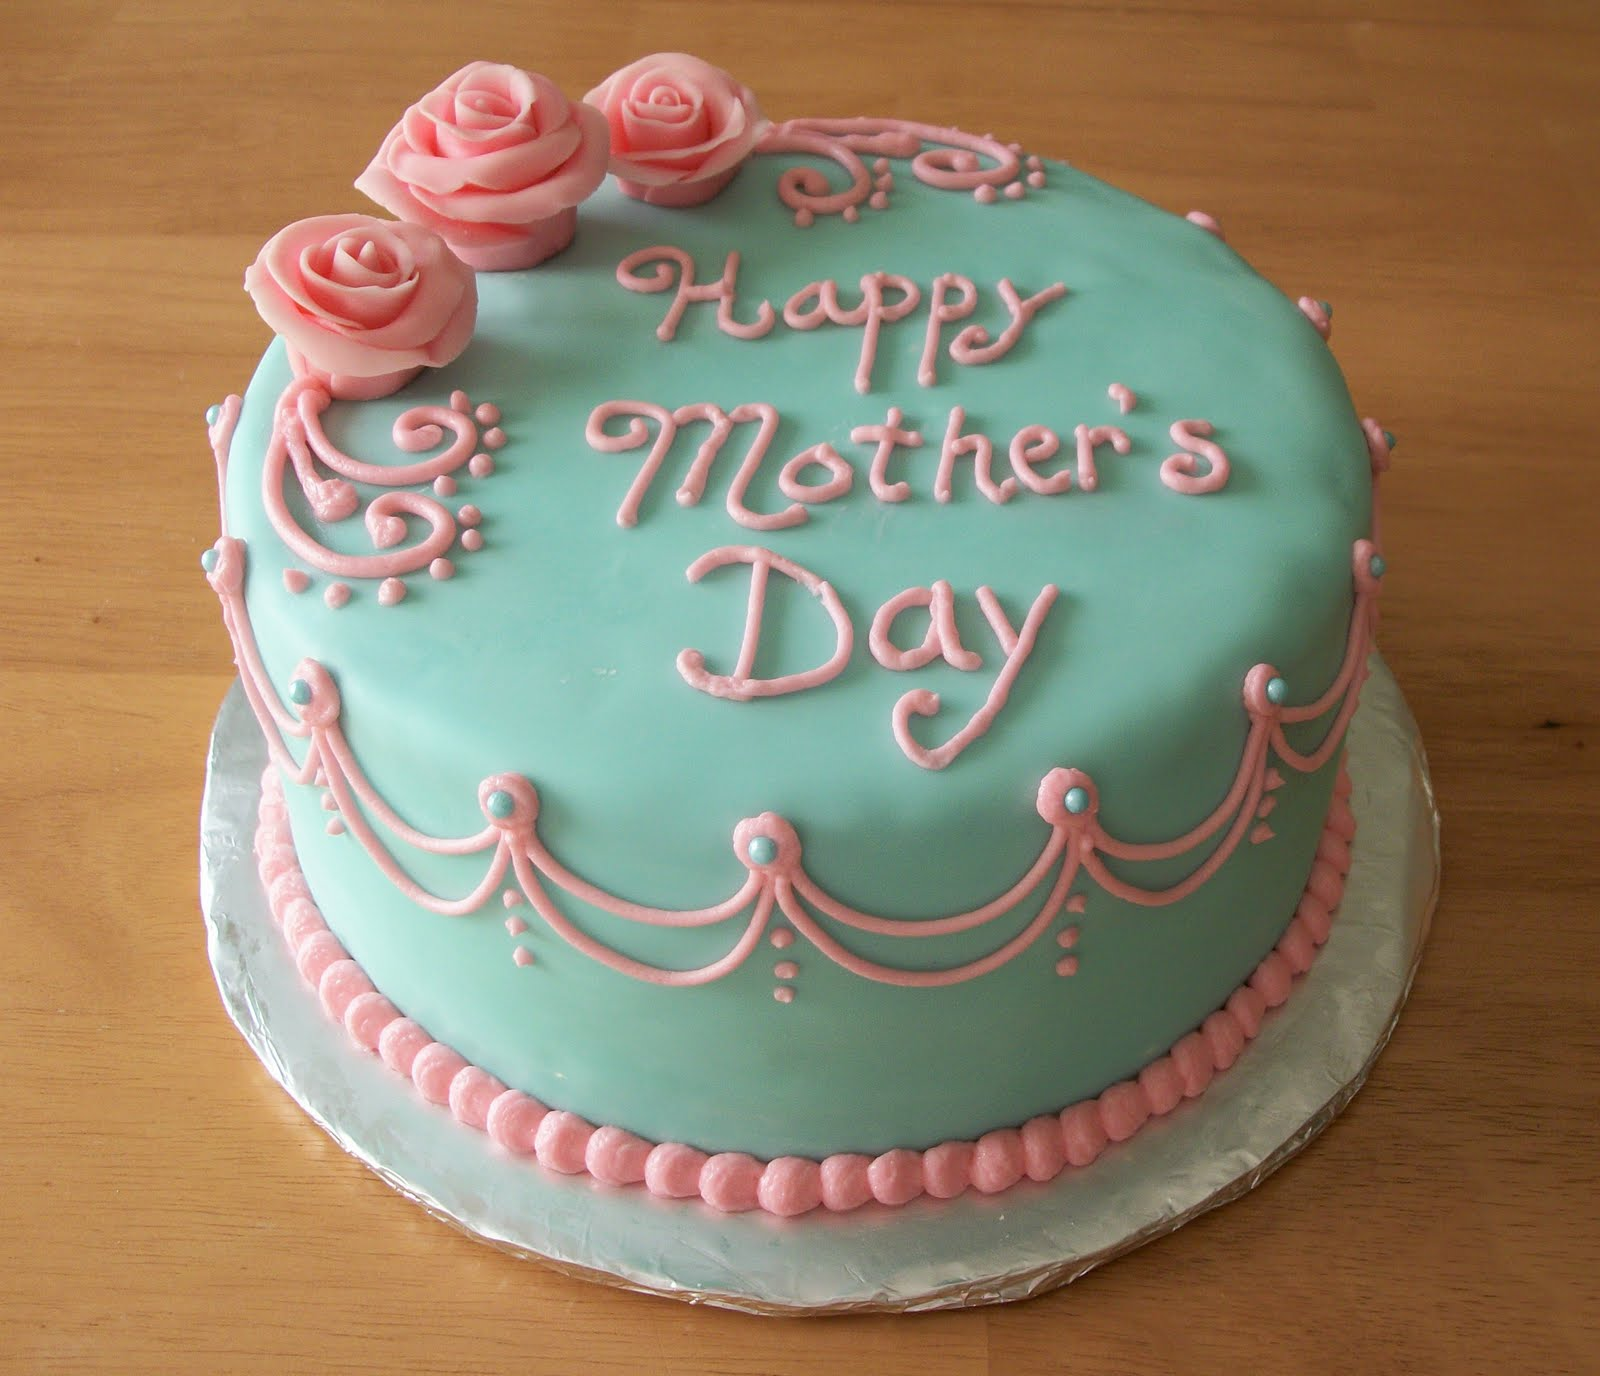 Cake Design For Mother : Cakes: Mother s Day on Pinterest Mothers Day Cake ...